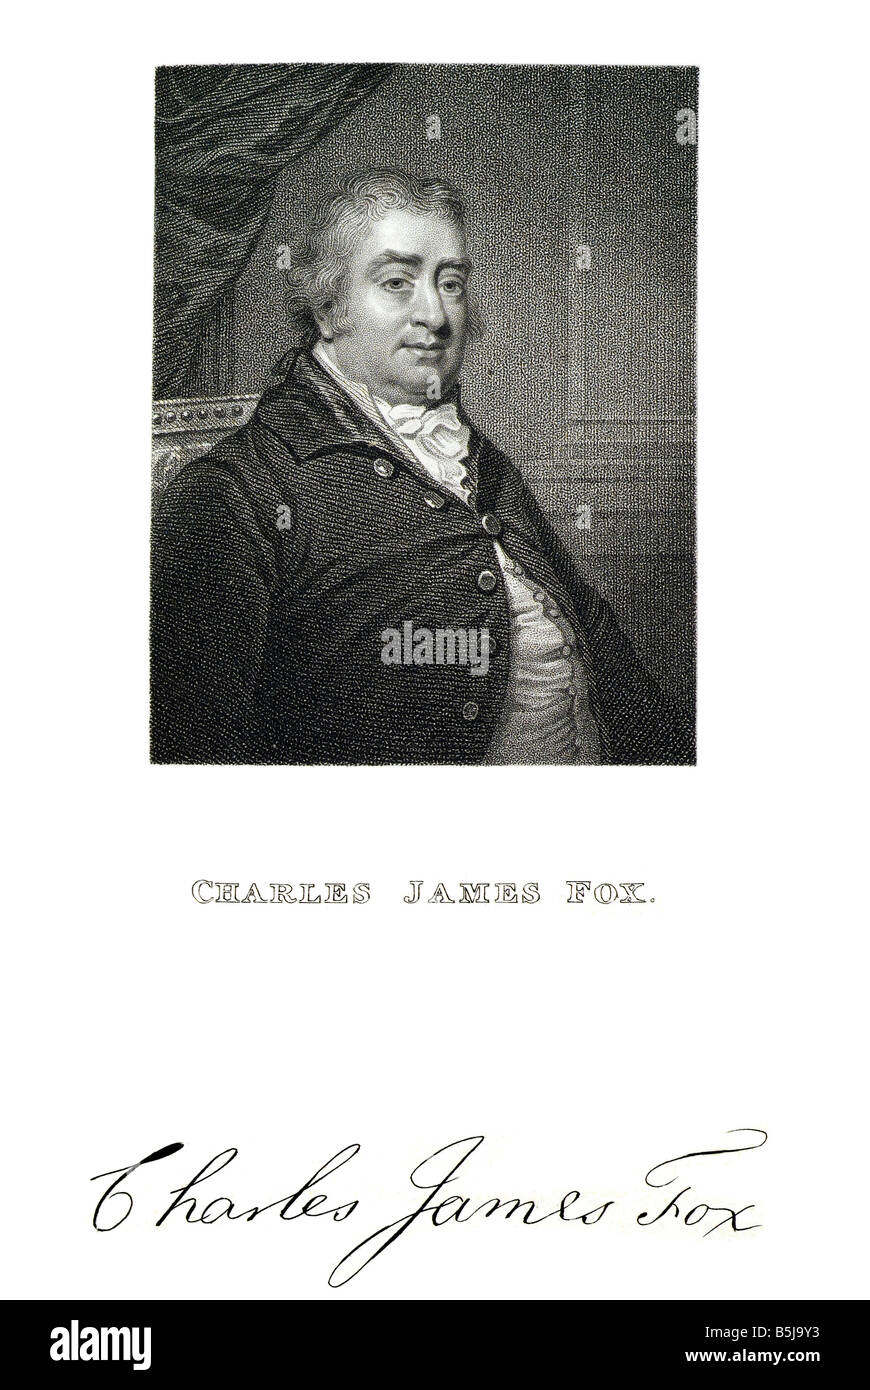 Charles James Fox Le Très Honorable Charles James Fox (24 janvier 1749 - 13 septembre 1806) était un éminent Photo Stock